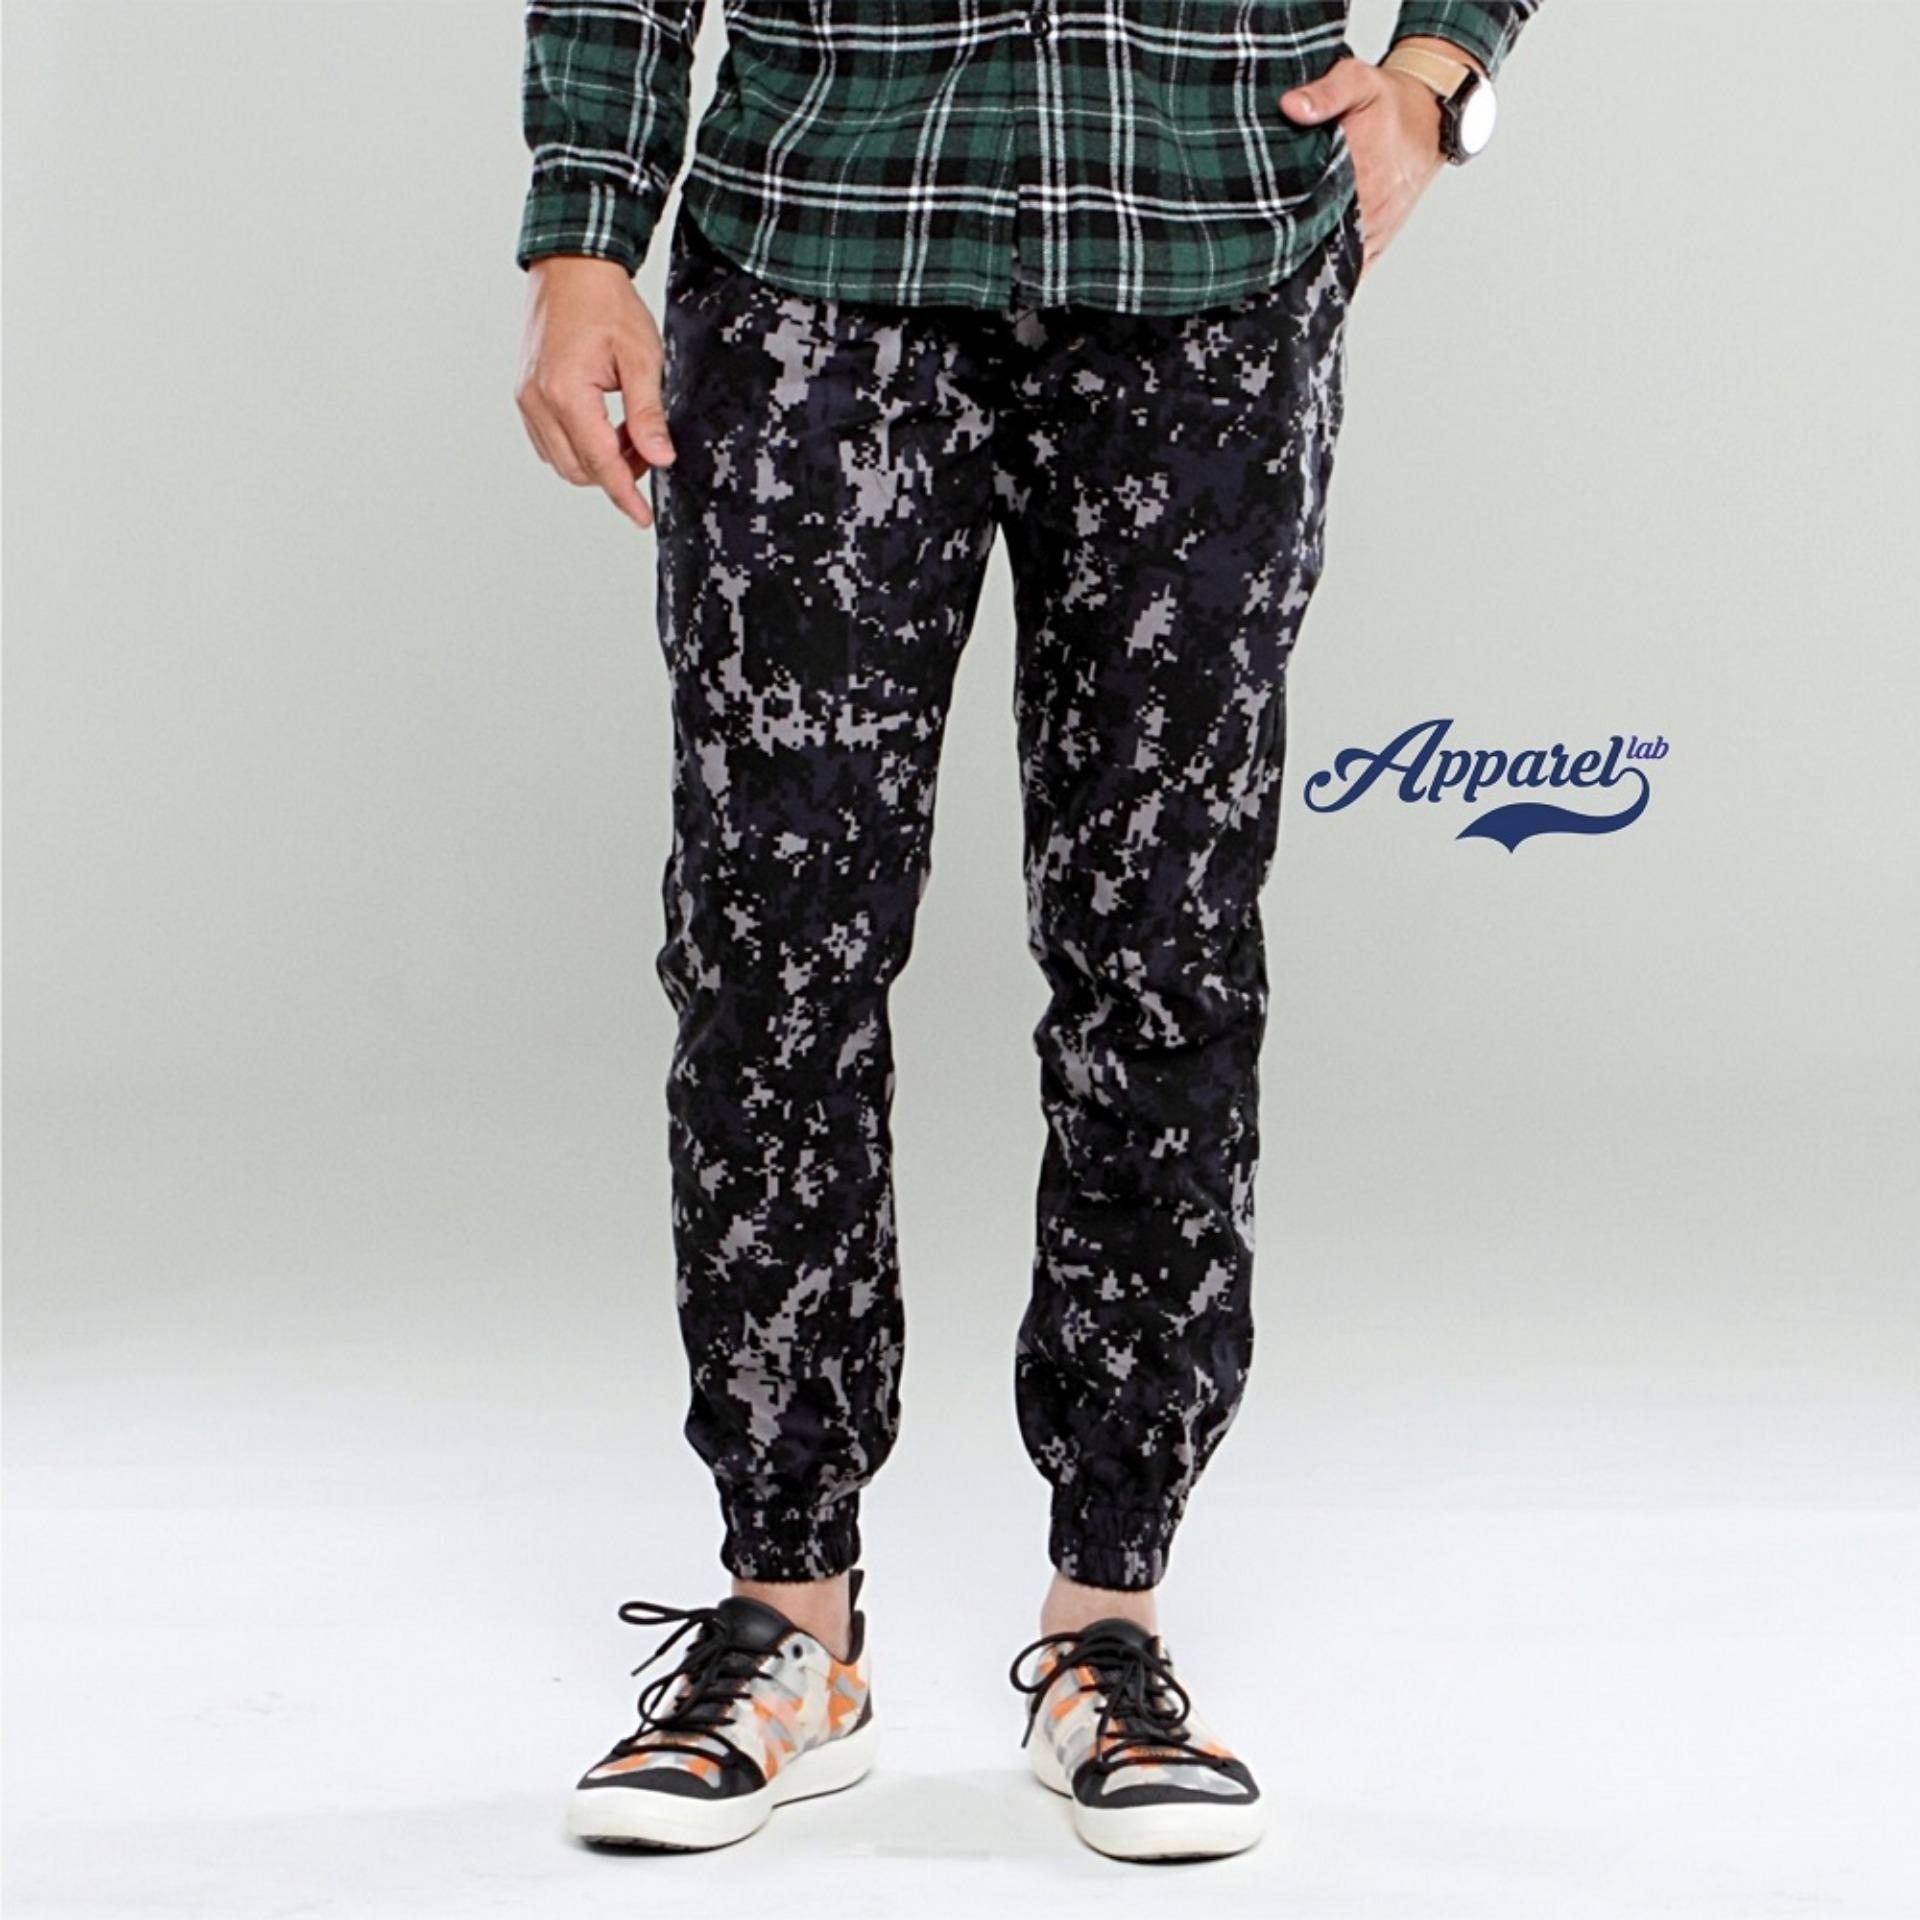 Beli Apparel Lab Jogger Army Navy Acufat Nyicil